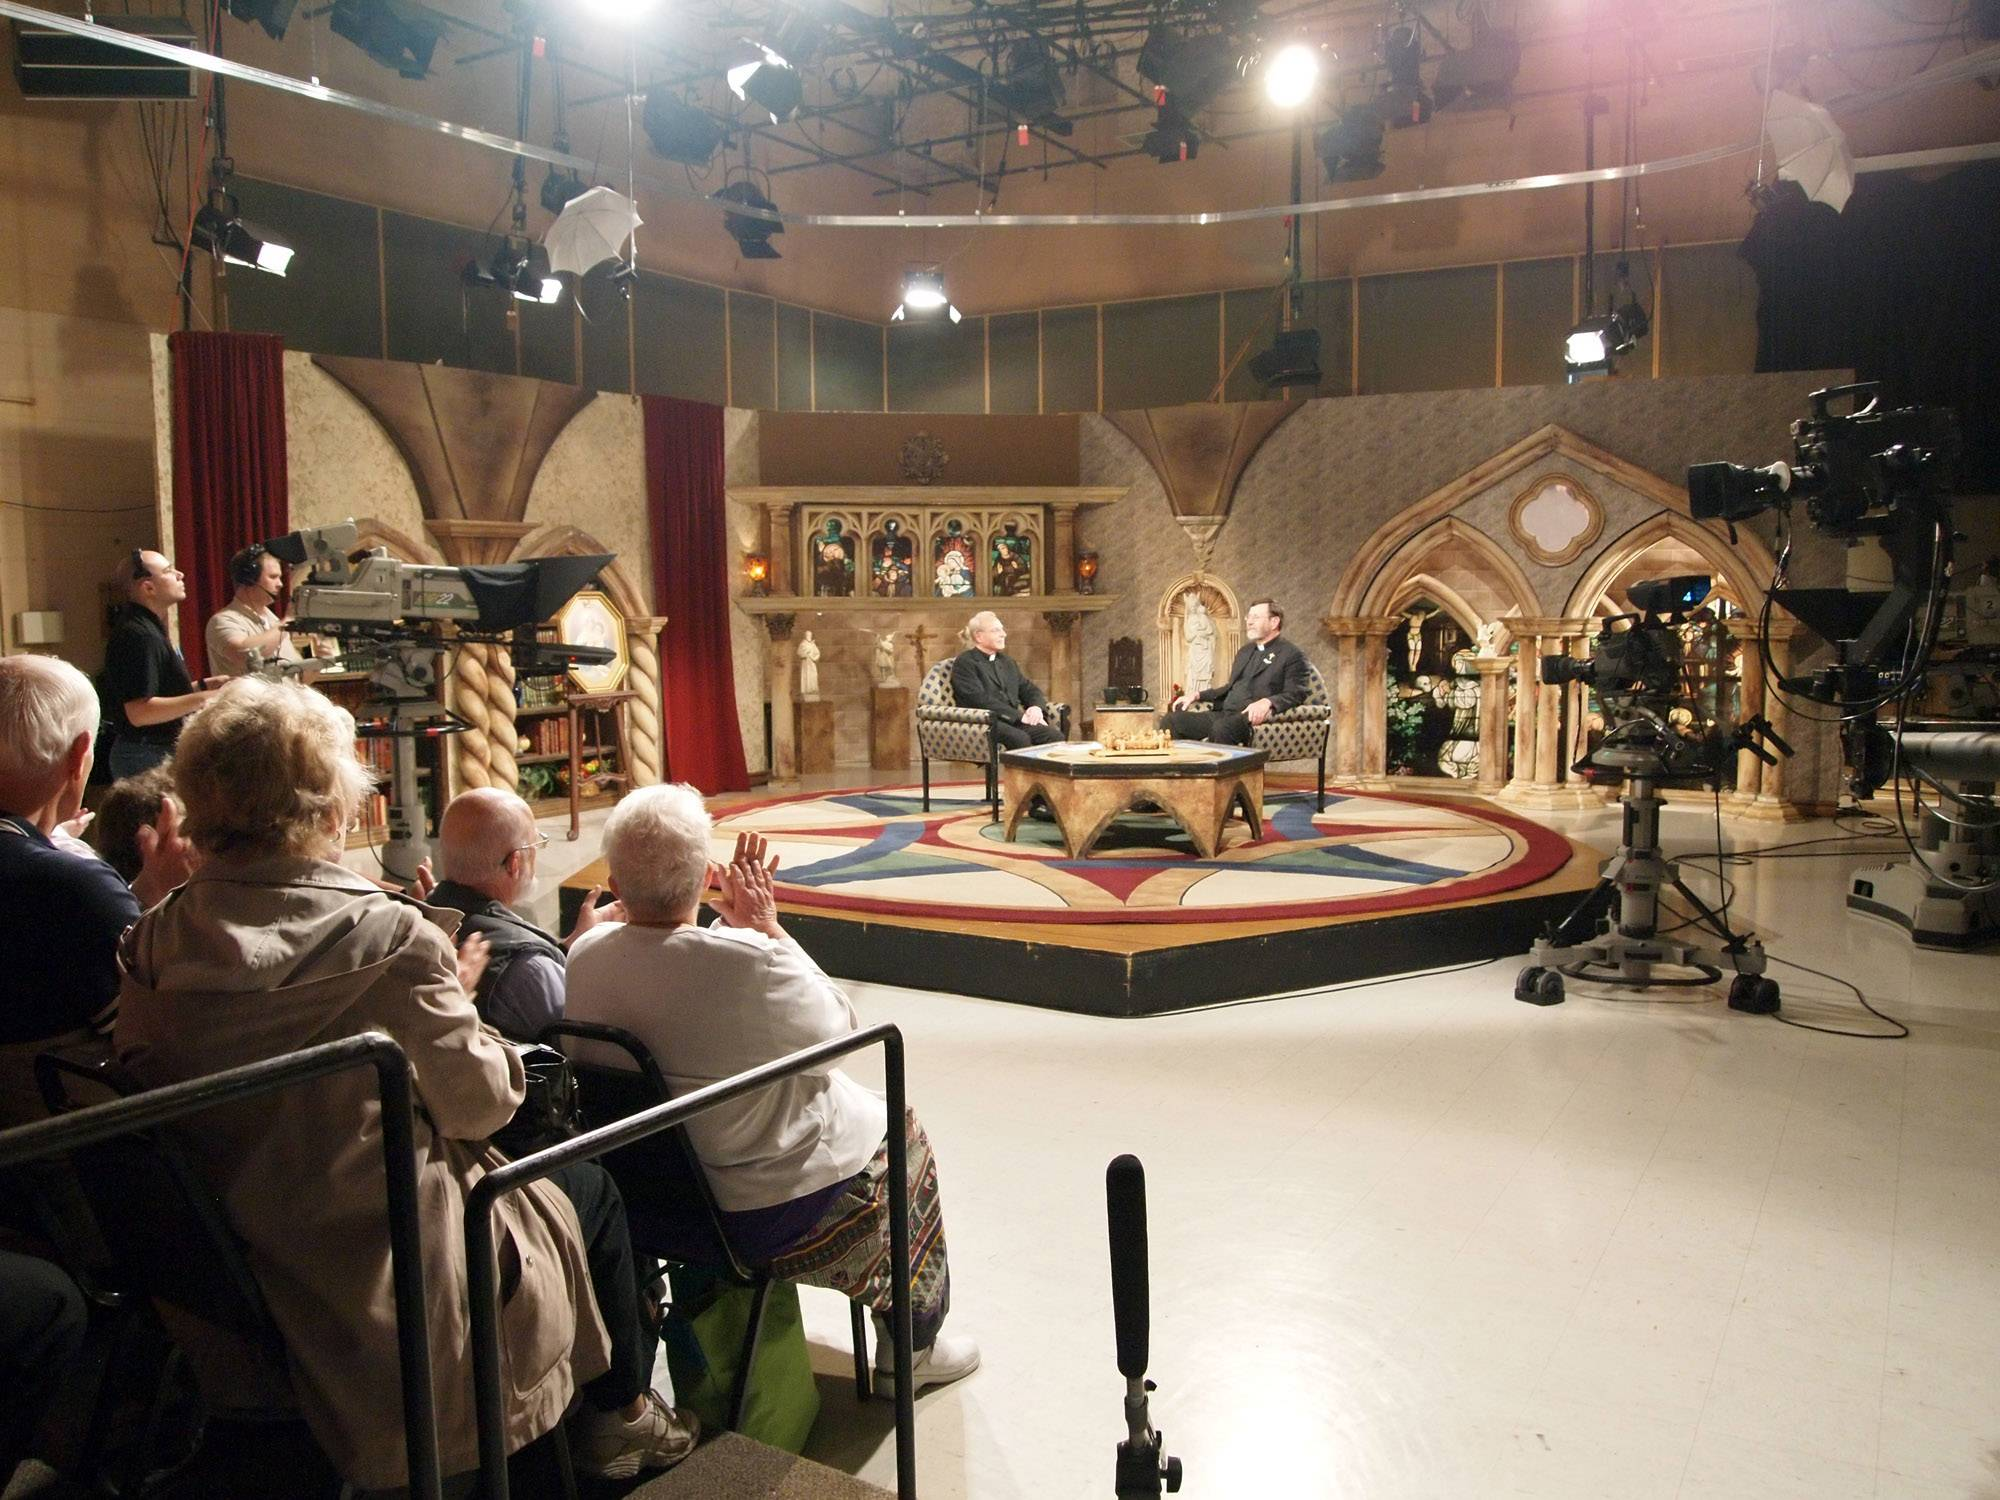 Visitors watch a taping of a show at Eternal Word Television Network in Birmingham, Ala. Located minutes from downtown in tree-covered Irondale, EWTN offers weekday tours of what it calls the world's largest religious media operation.